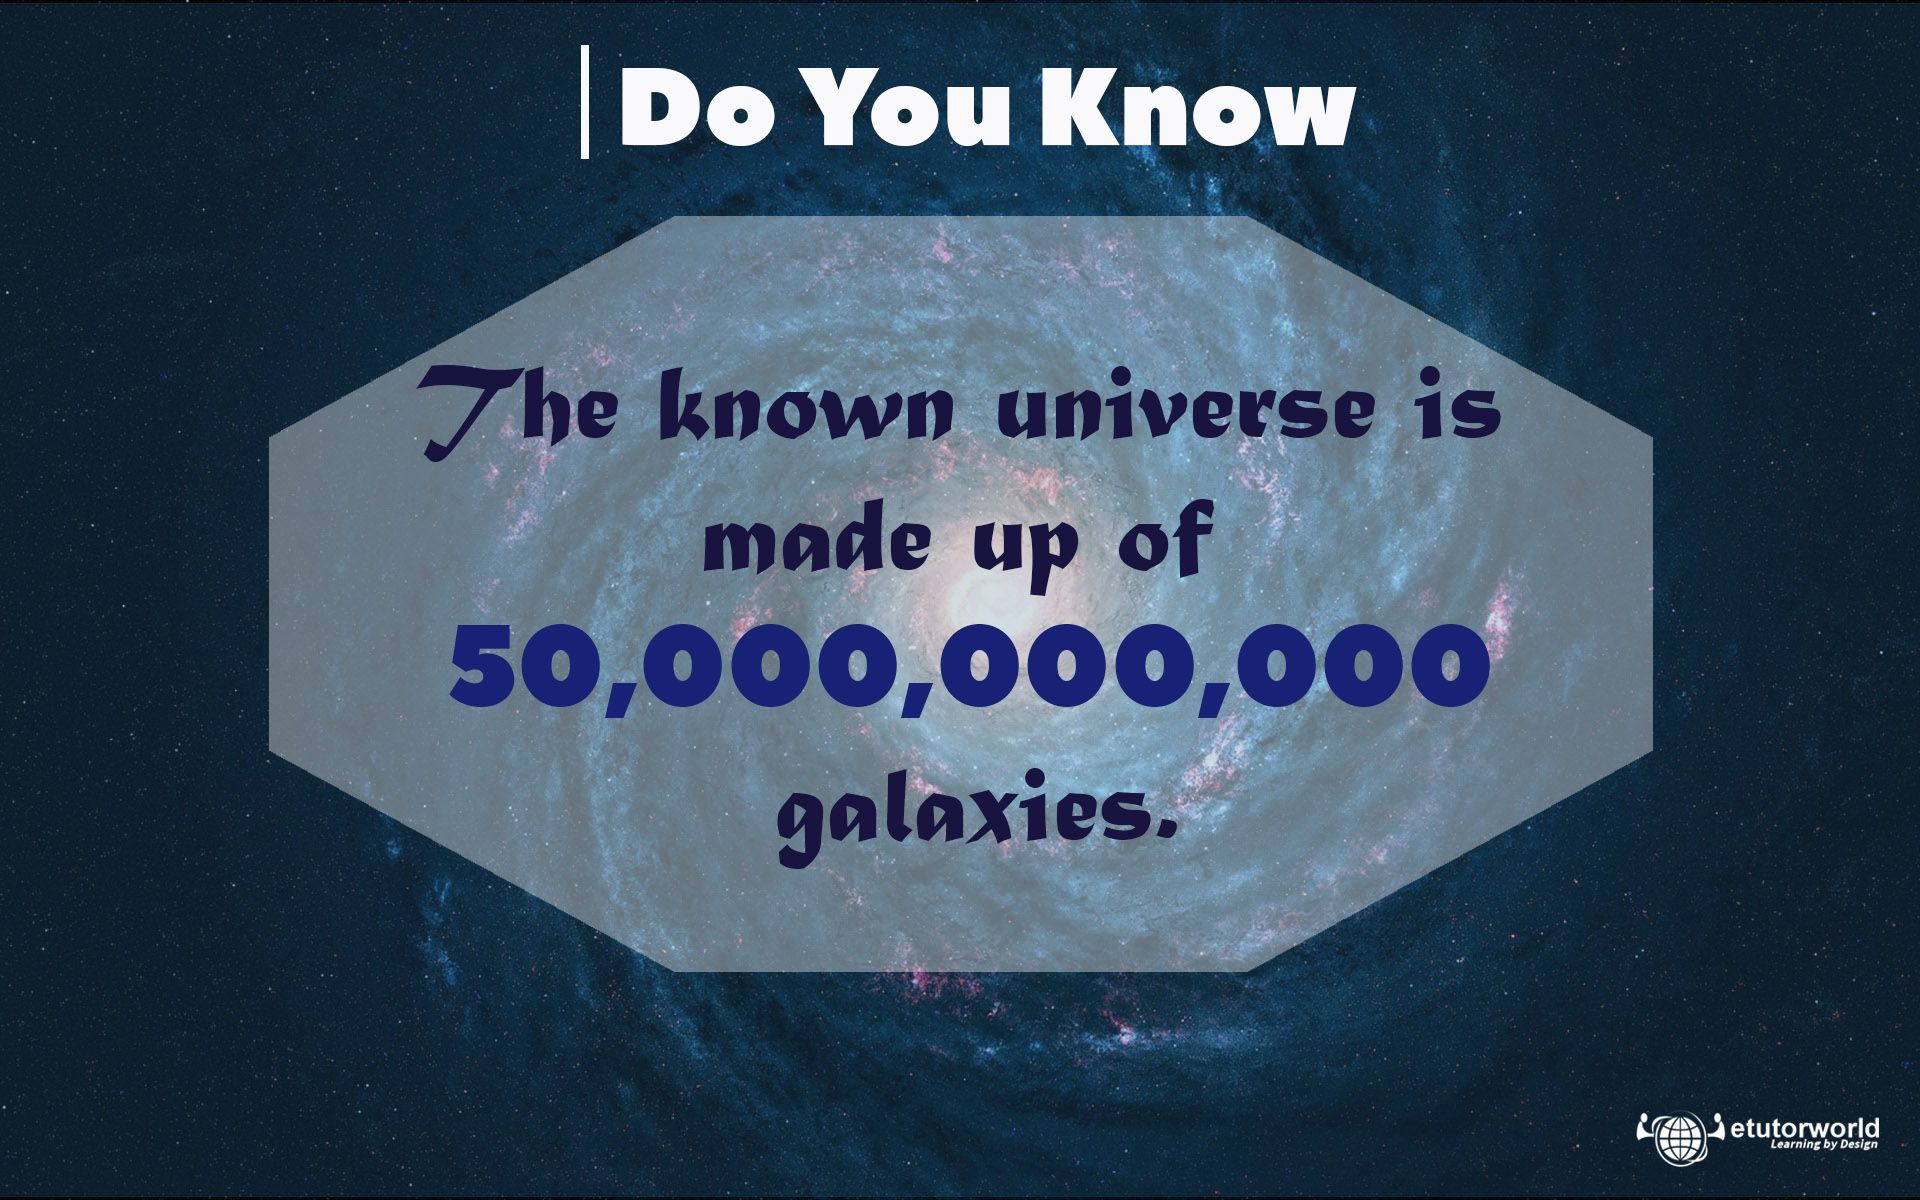 There Are Between 100 000 000 000 And 1 000 000 000 000